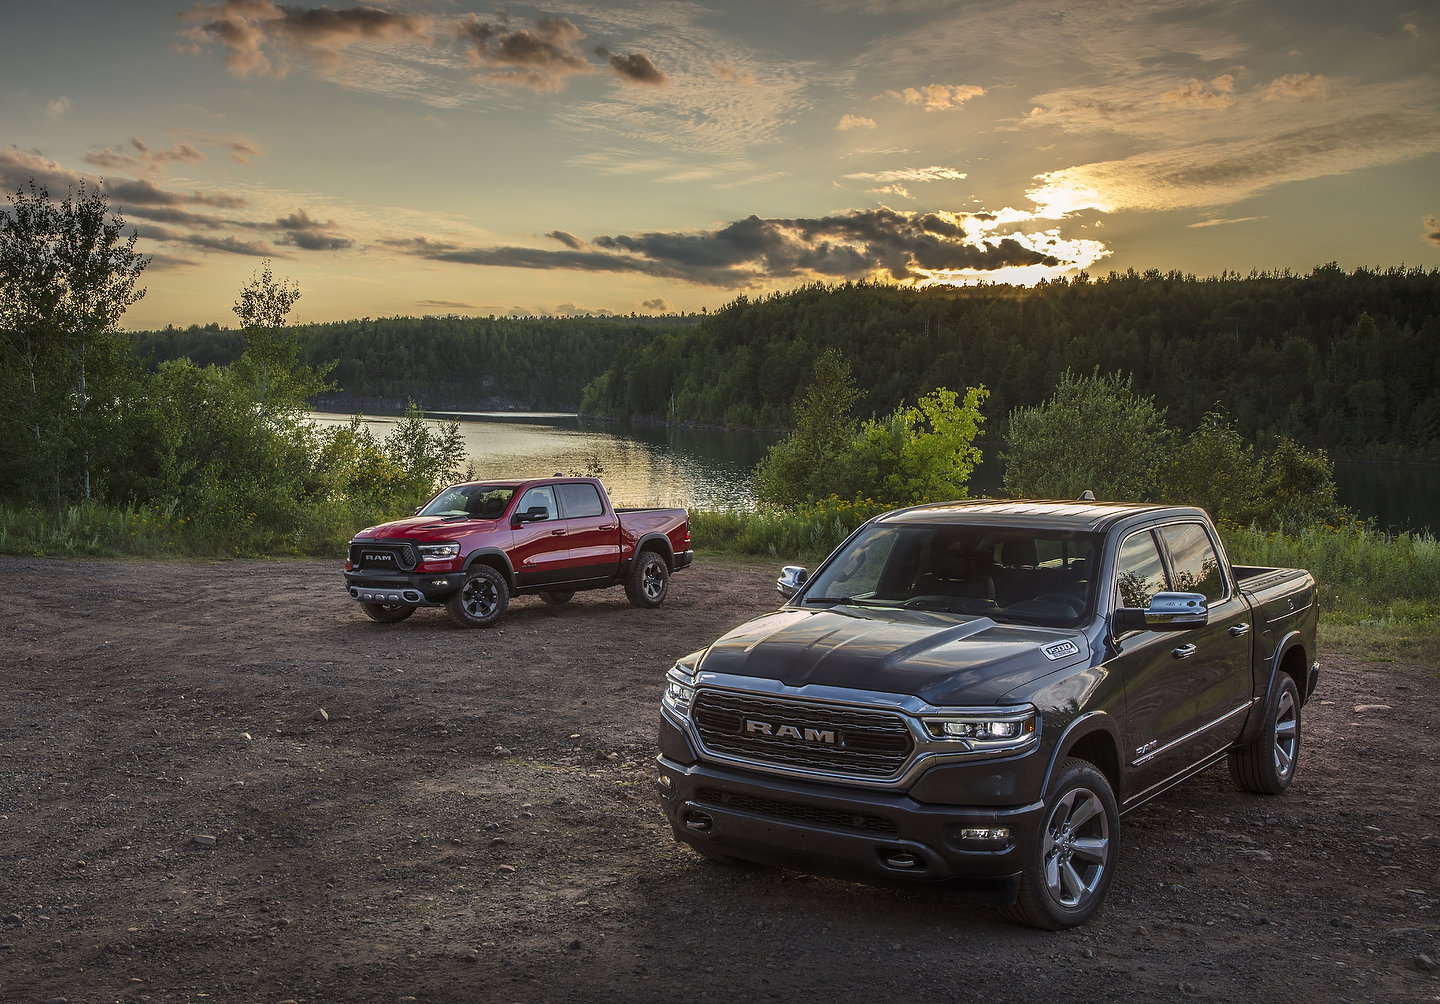 New 2020 RAM 1500 EcoDiesel Fuel Economy Ratings - Motor ...